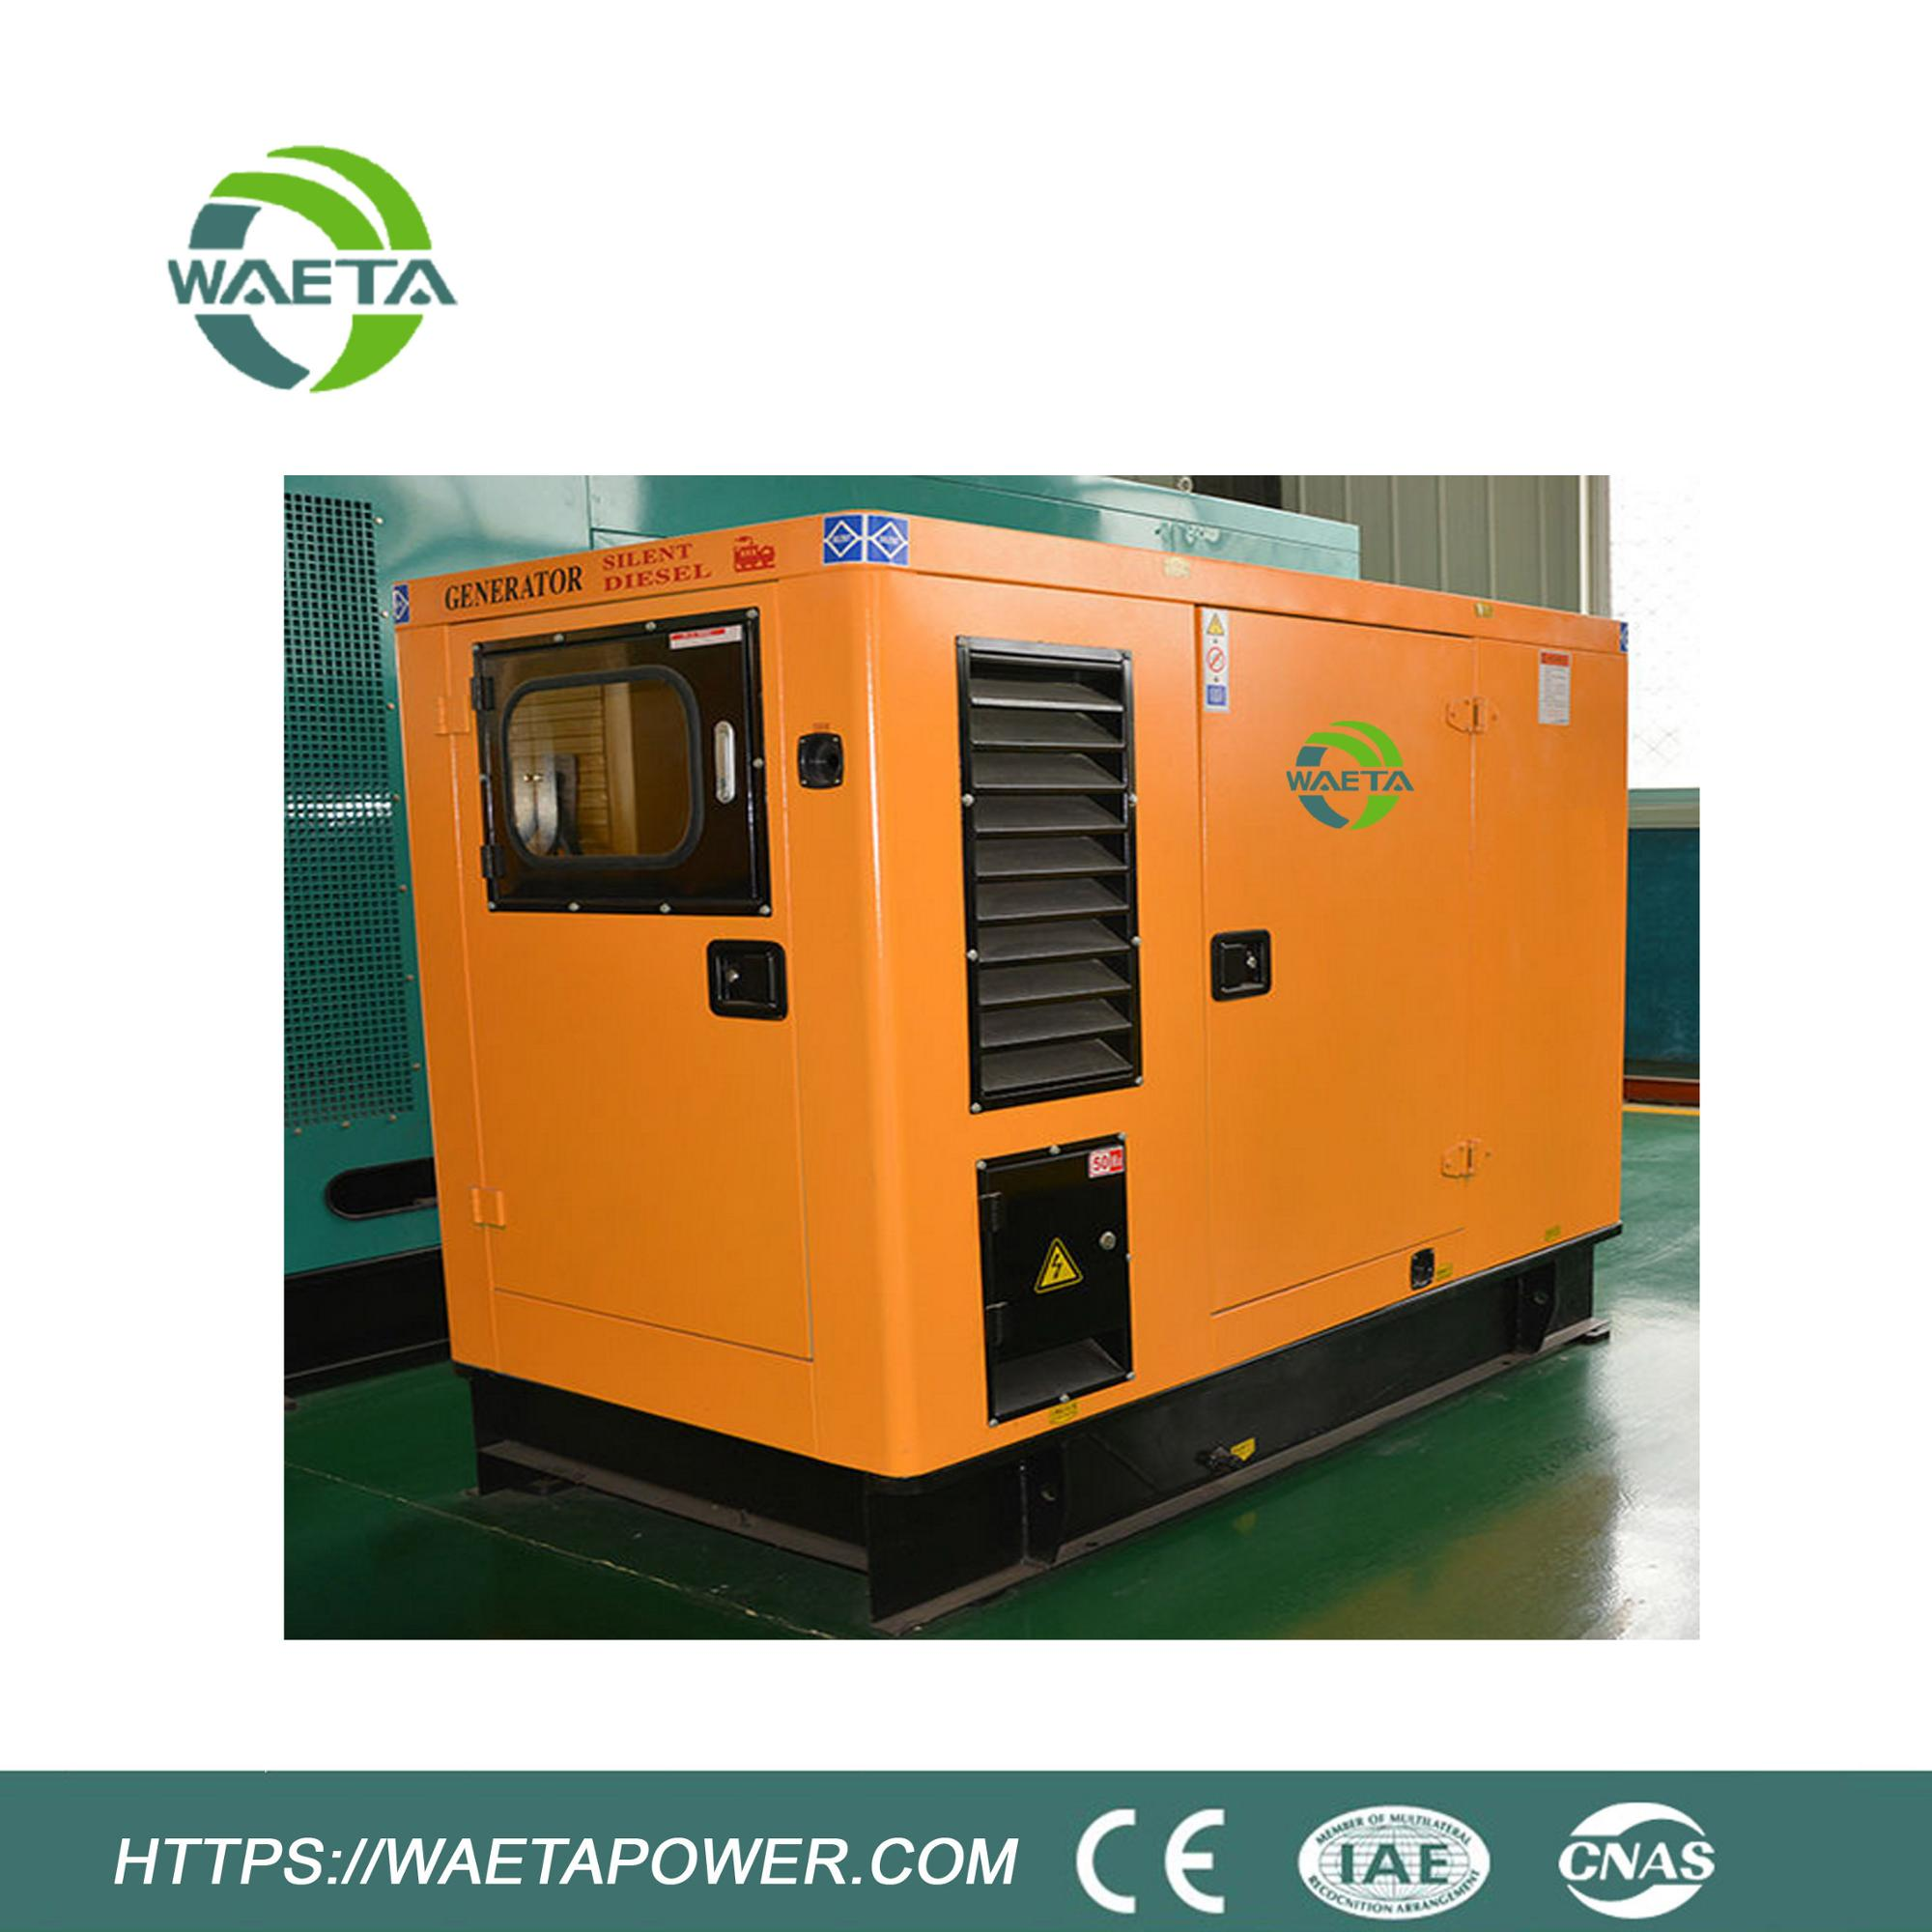 36kw 45kva Generator, 36kw 45kva Generator Suppliers and Manufacturers at  Alibaba.com